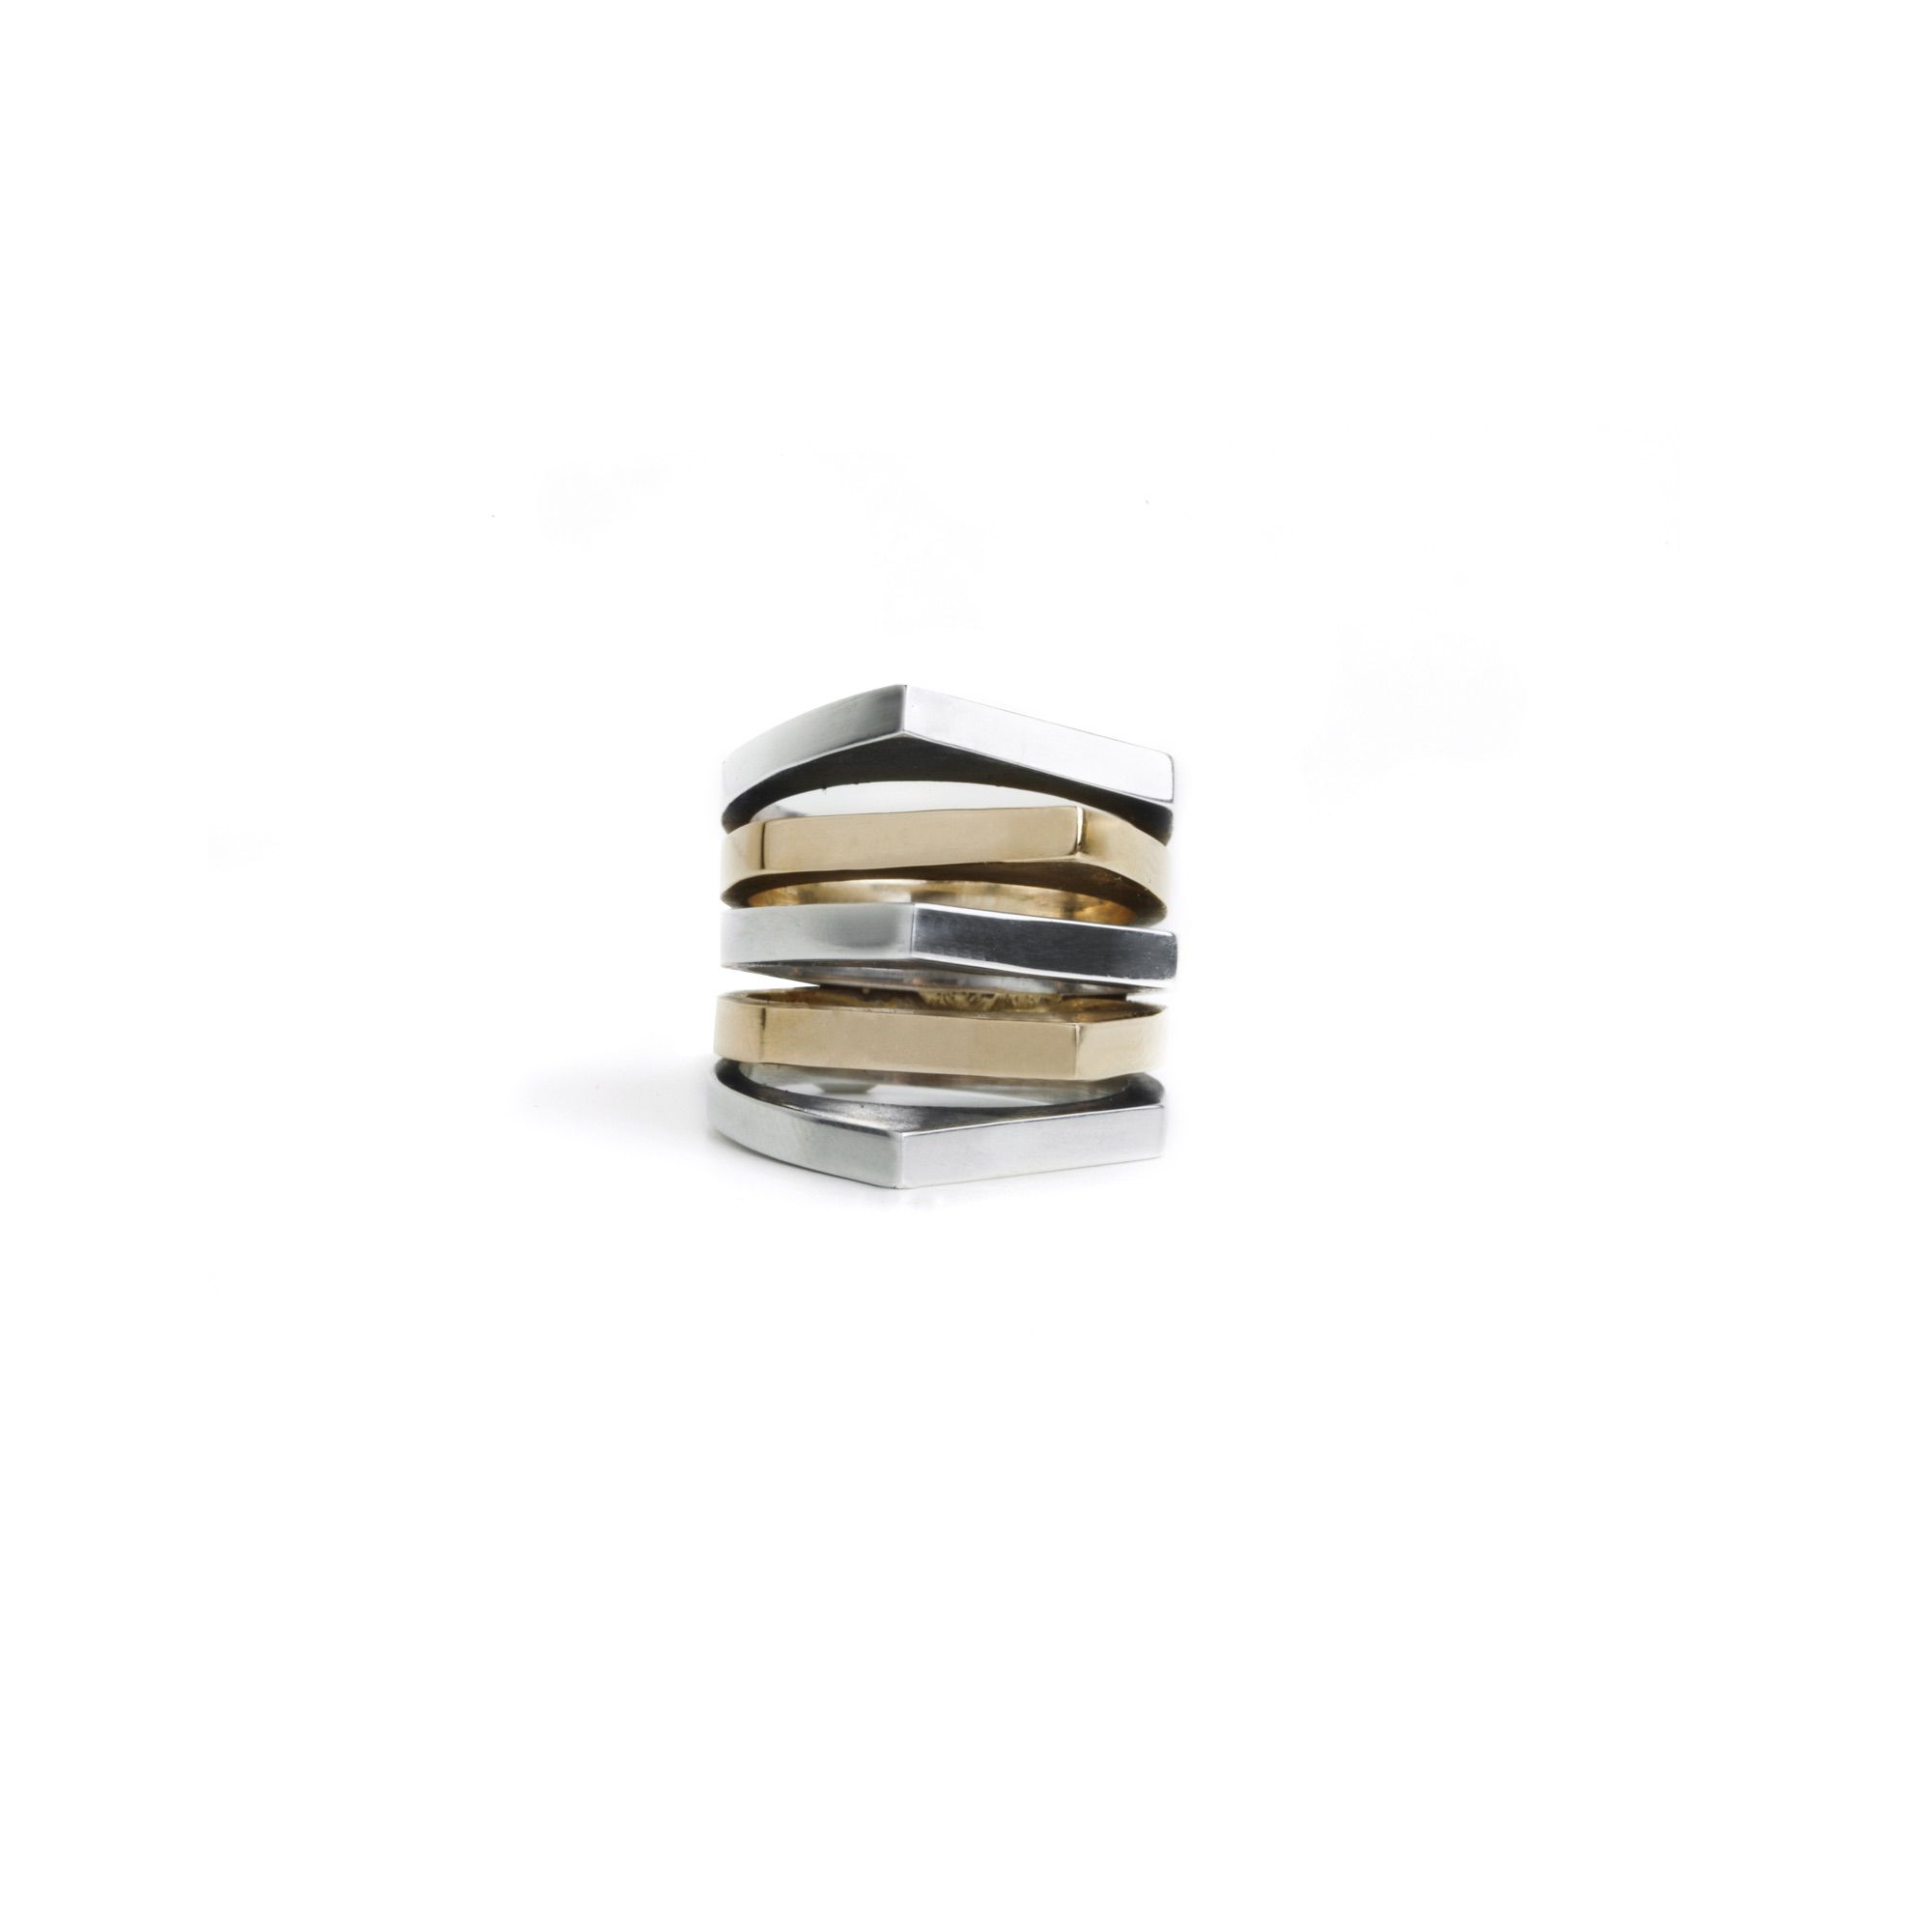 5 element 'Congiunzioni' ring Ring in silver and bronze